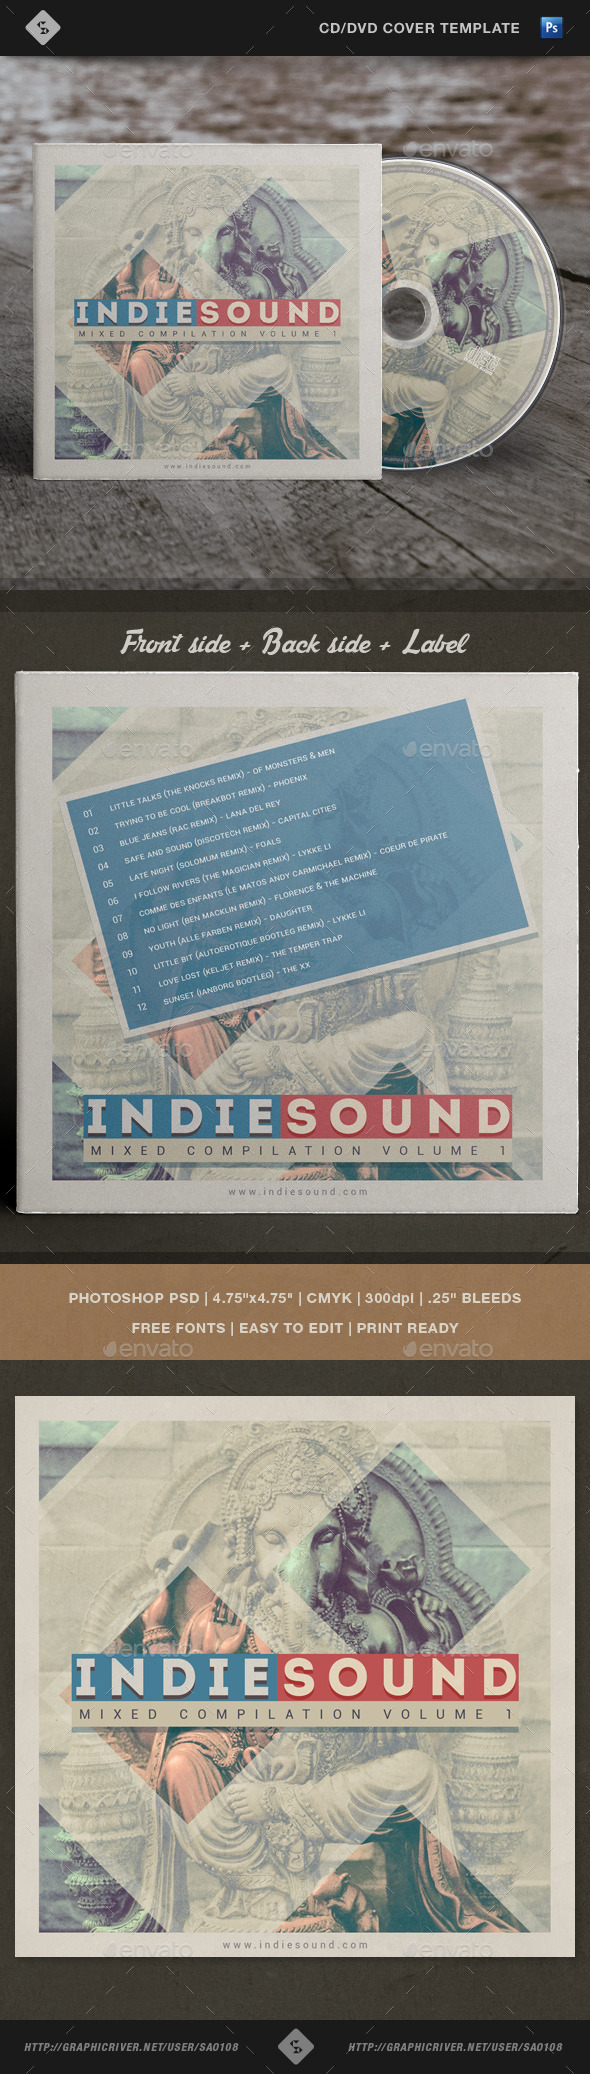 GraphicRiver Indie Sound CD Cover Template Artwork 10784818